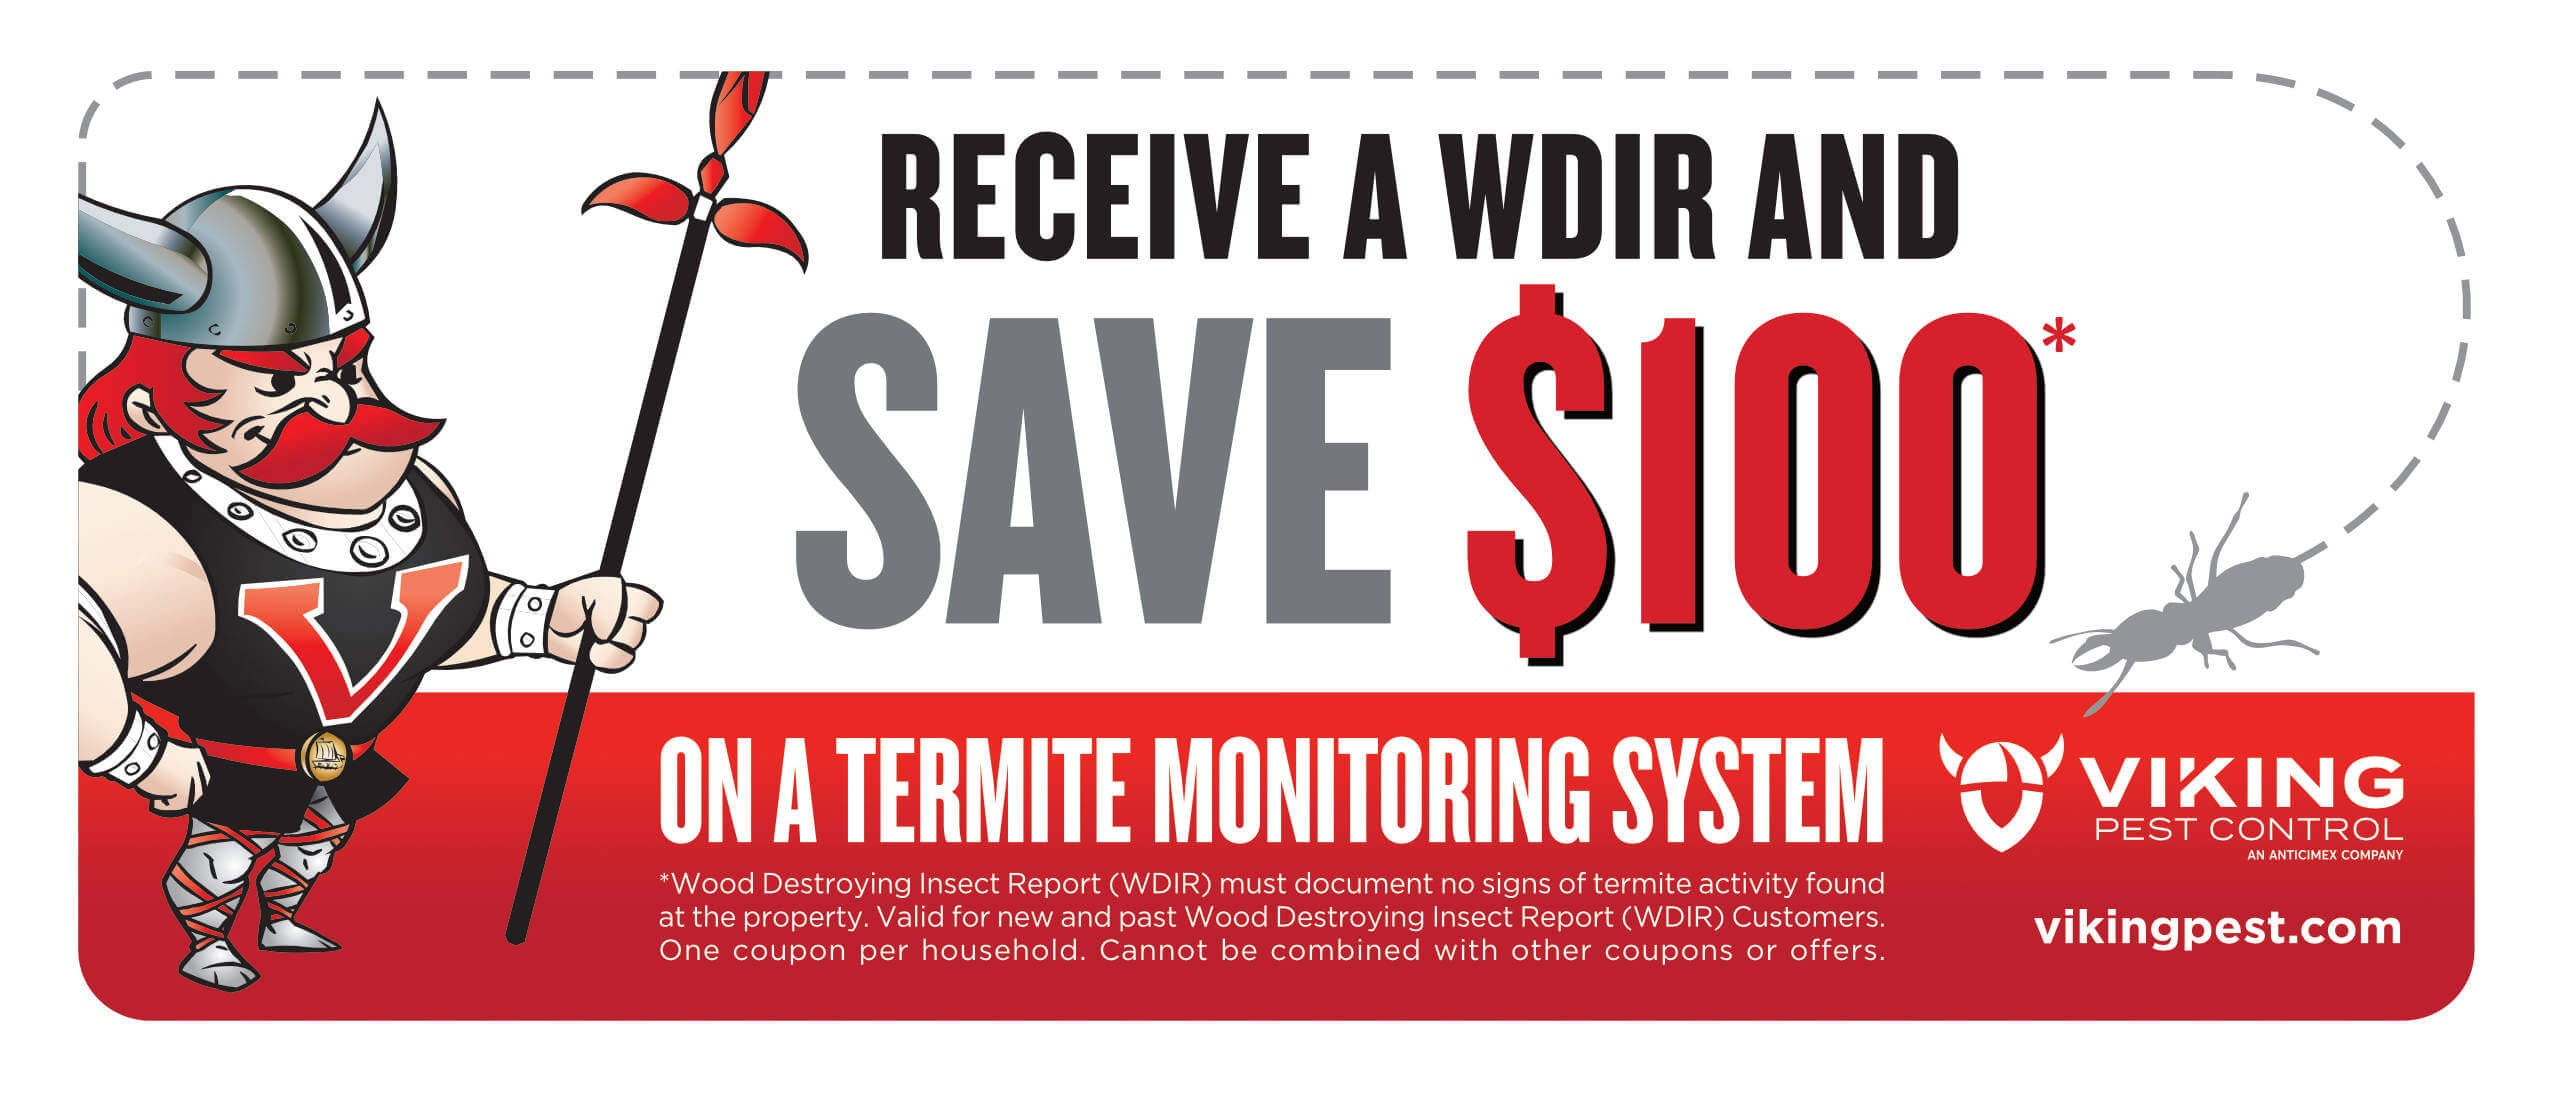 Save $100 on a Termite Monitoring System with the Purchase of a WDIR